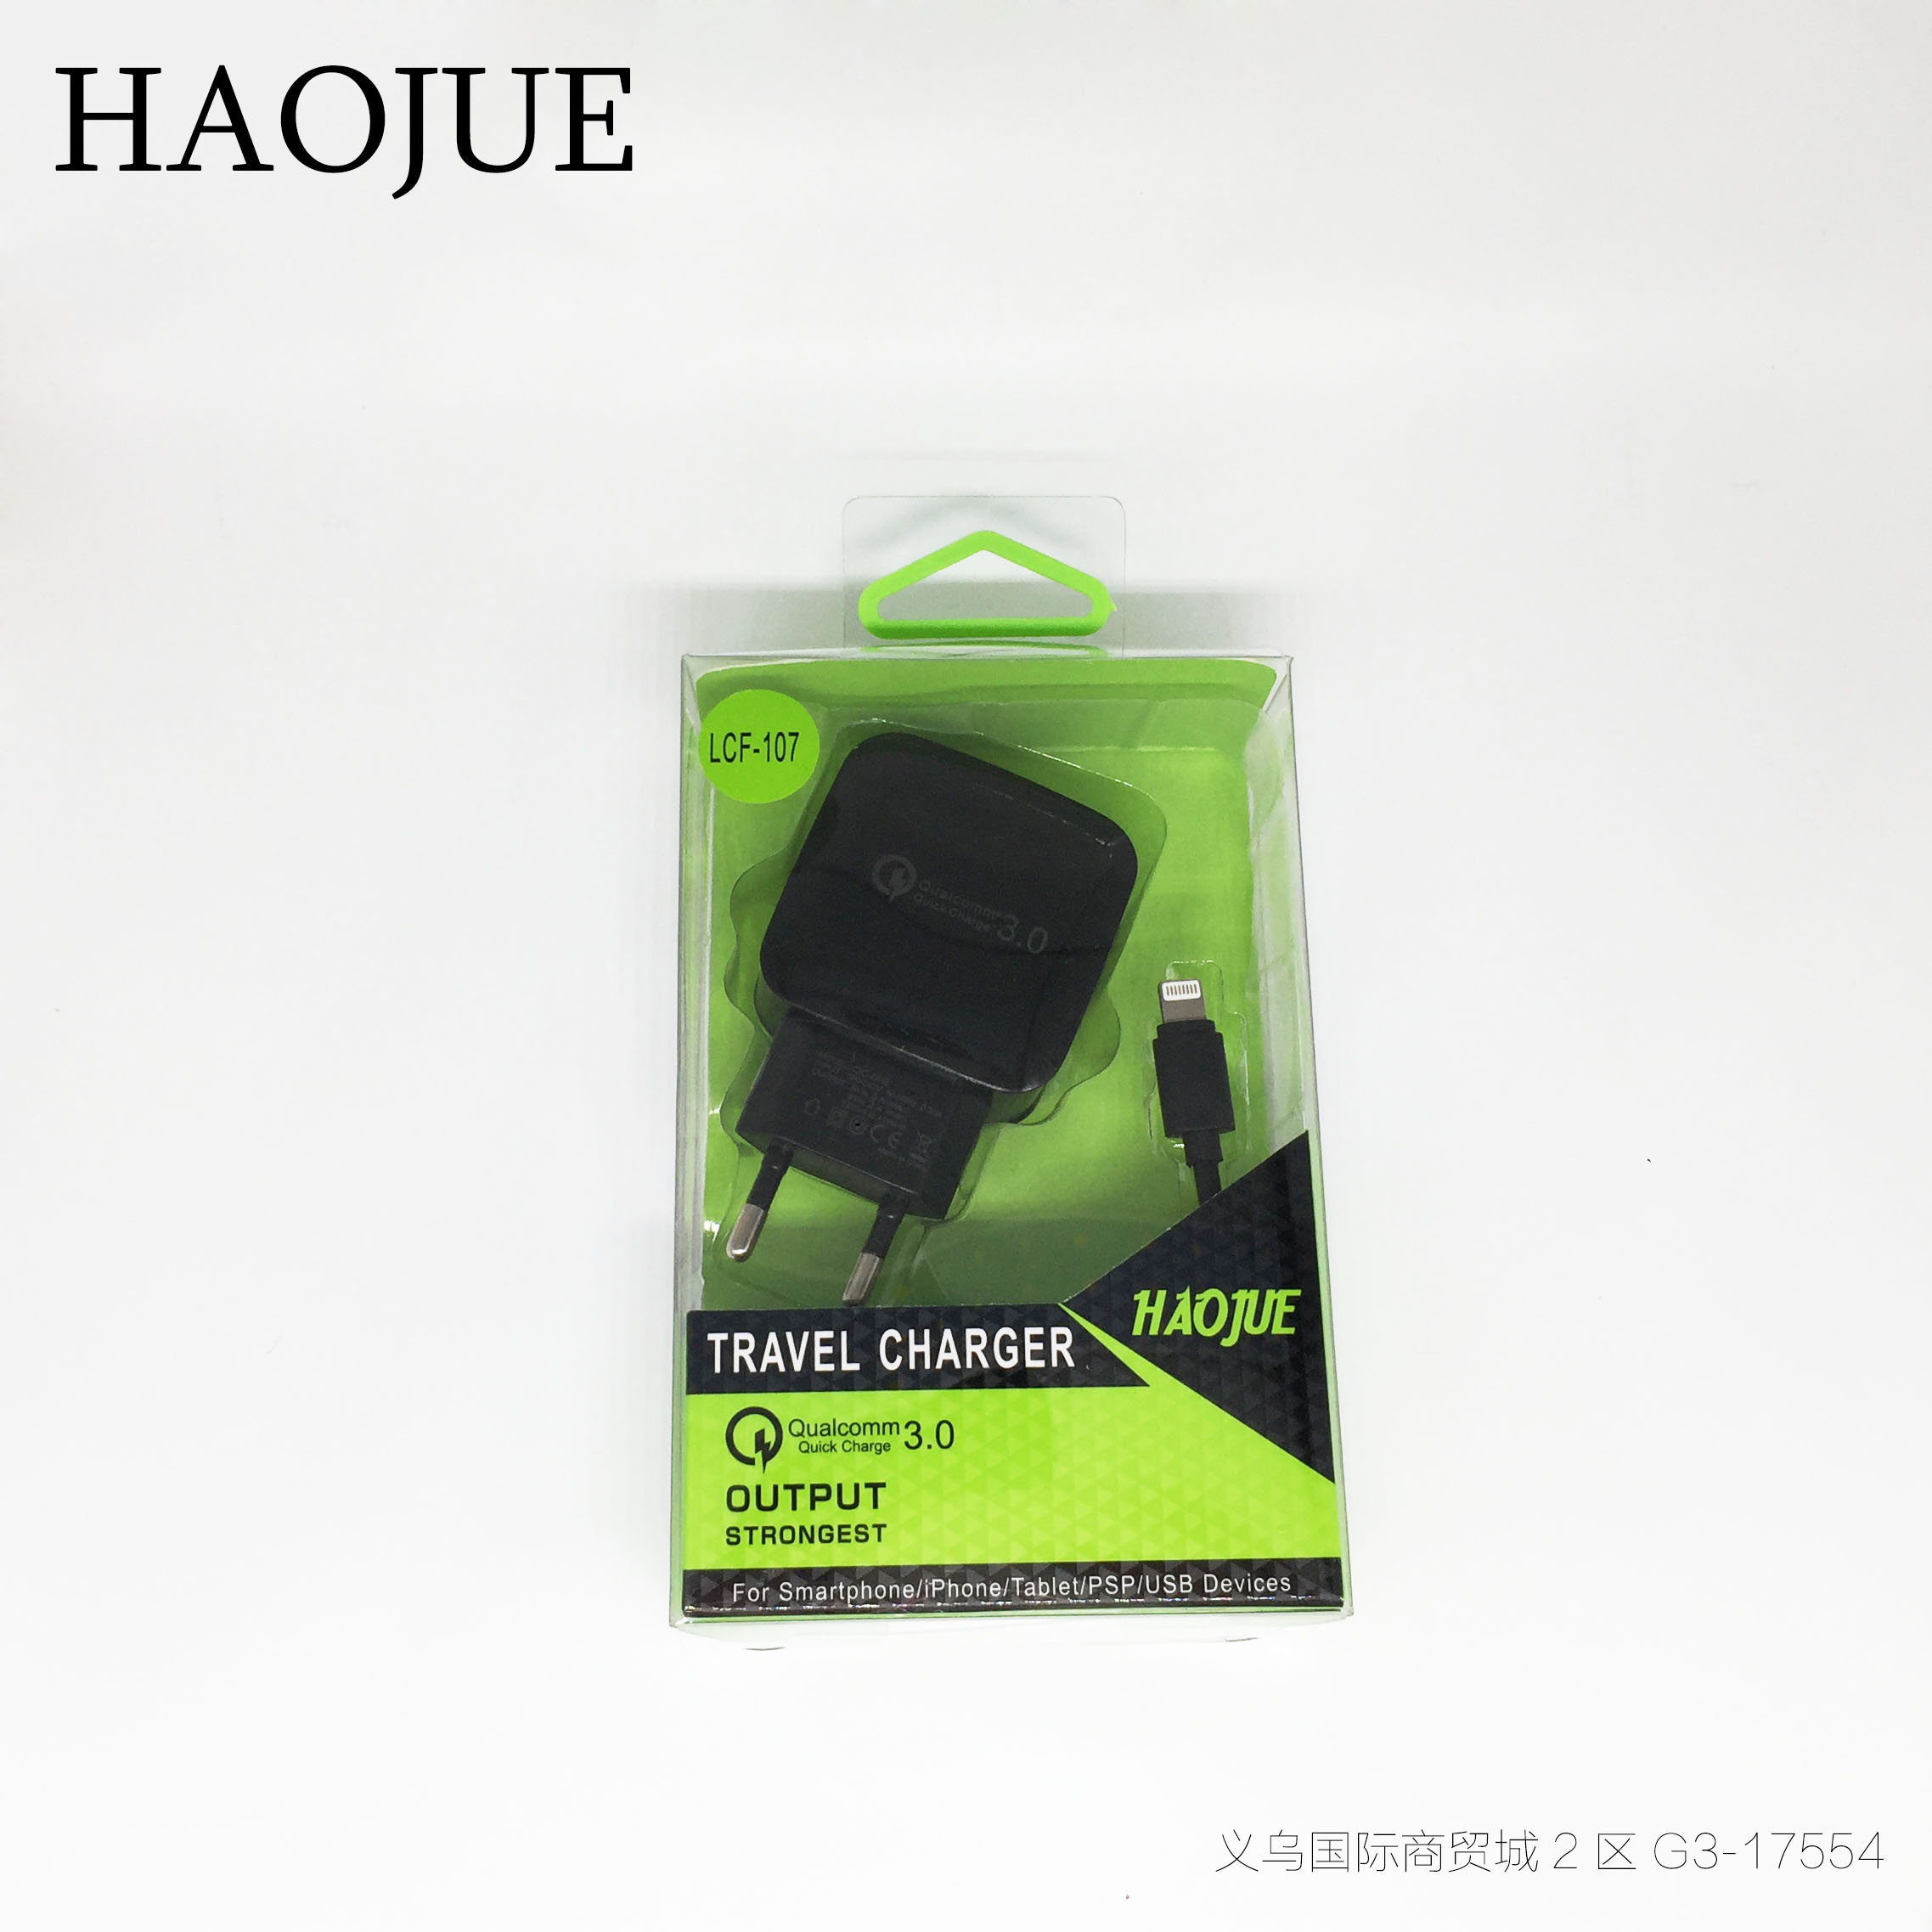 Supply Haojue Qc30 Flash Plug Single Port Usb Household Psp Car Charger Charging Head Mobile Phone Lighting Lamp And Other Accessories There Are Hundreds Of Varieties Brand Products With Stable